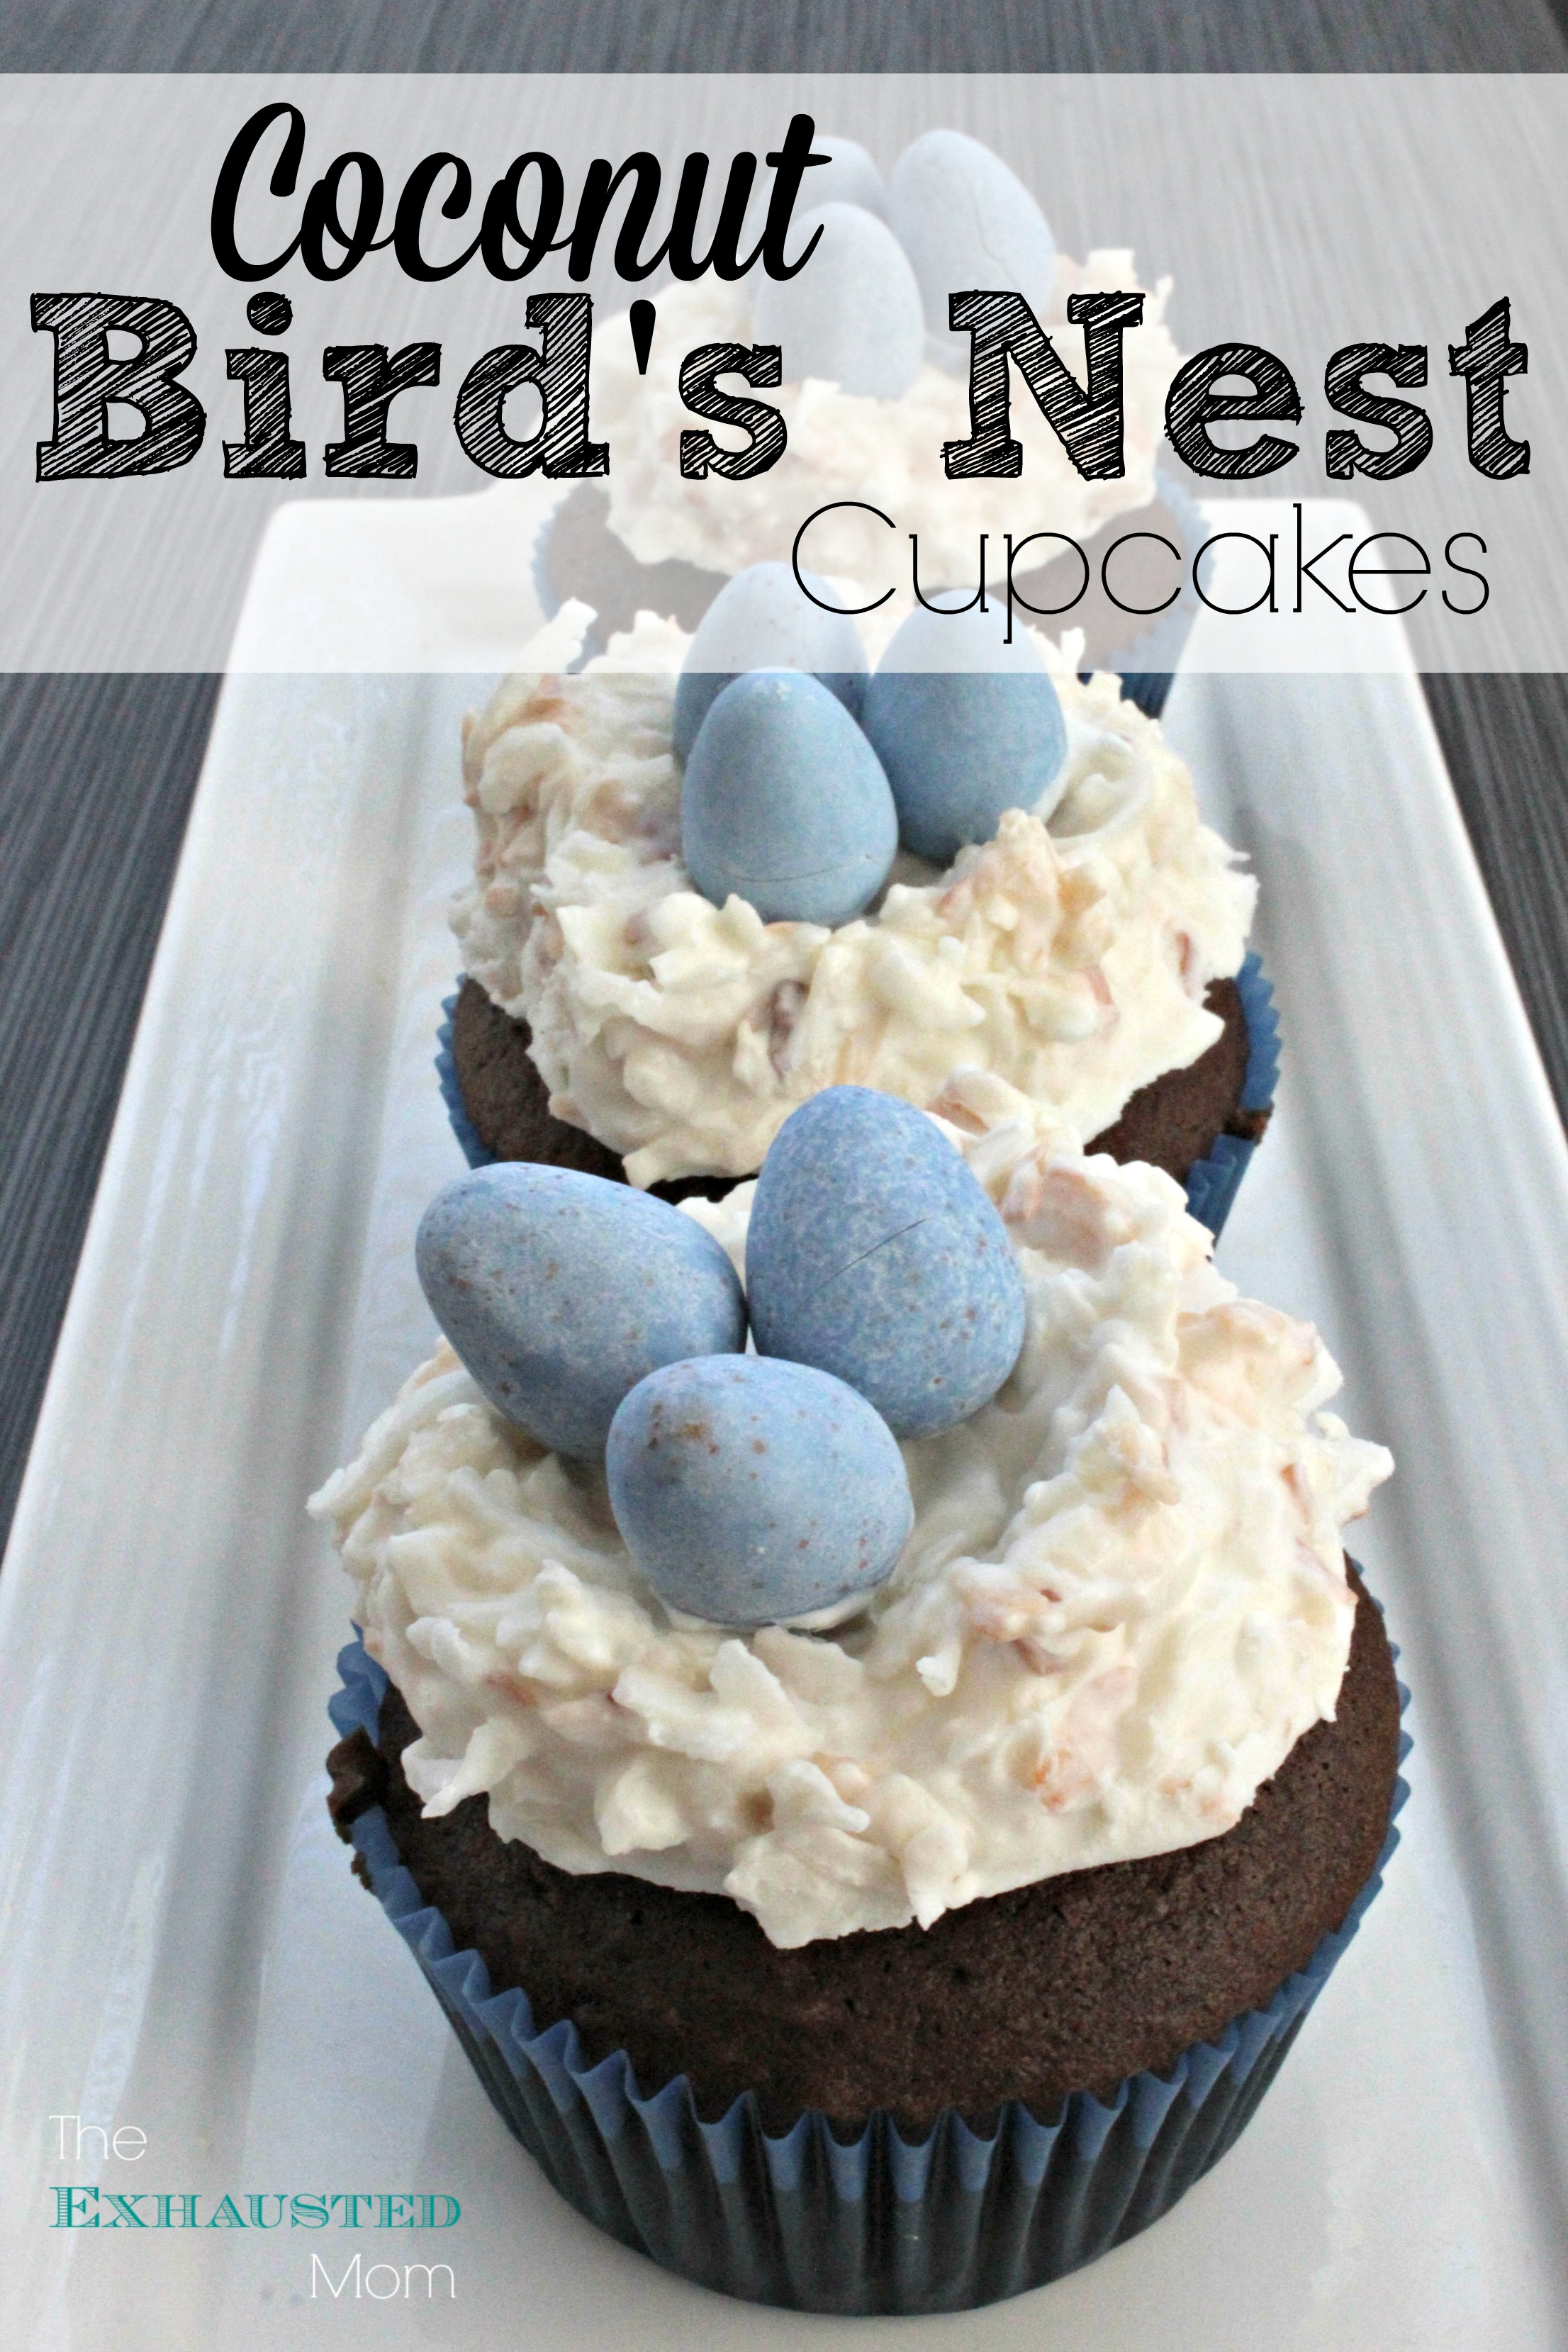 Coconut Bird's Nest Cupcakes